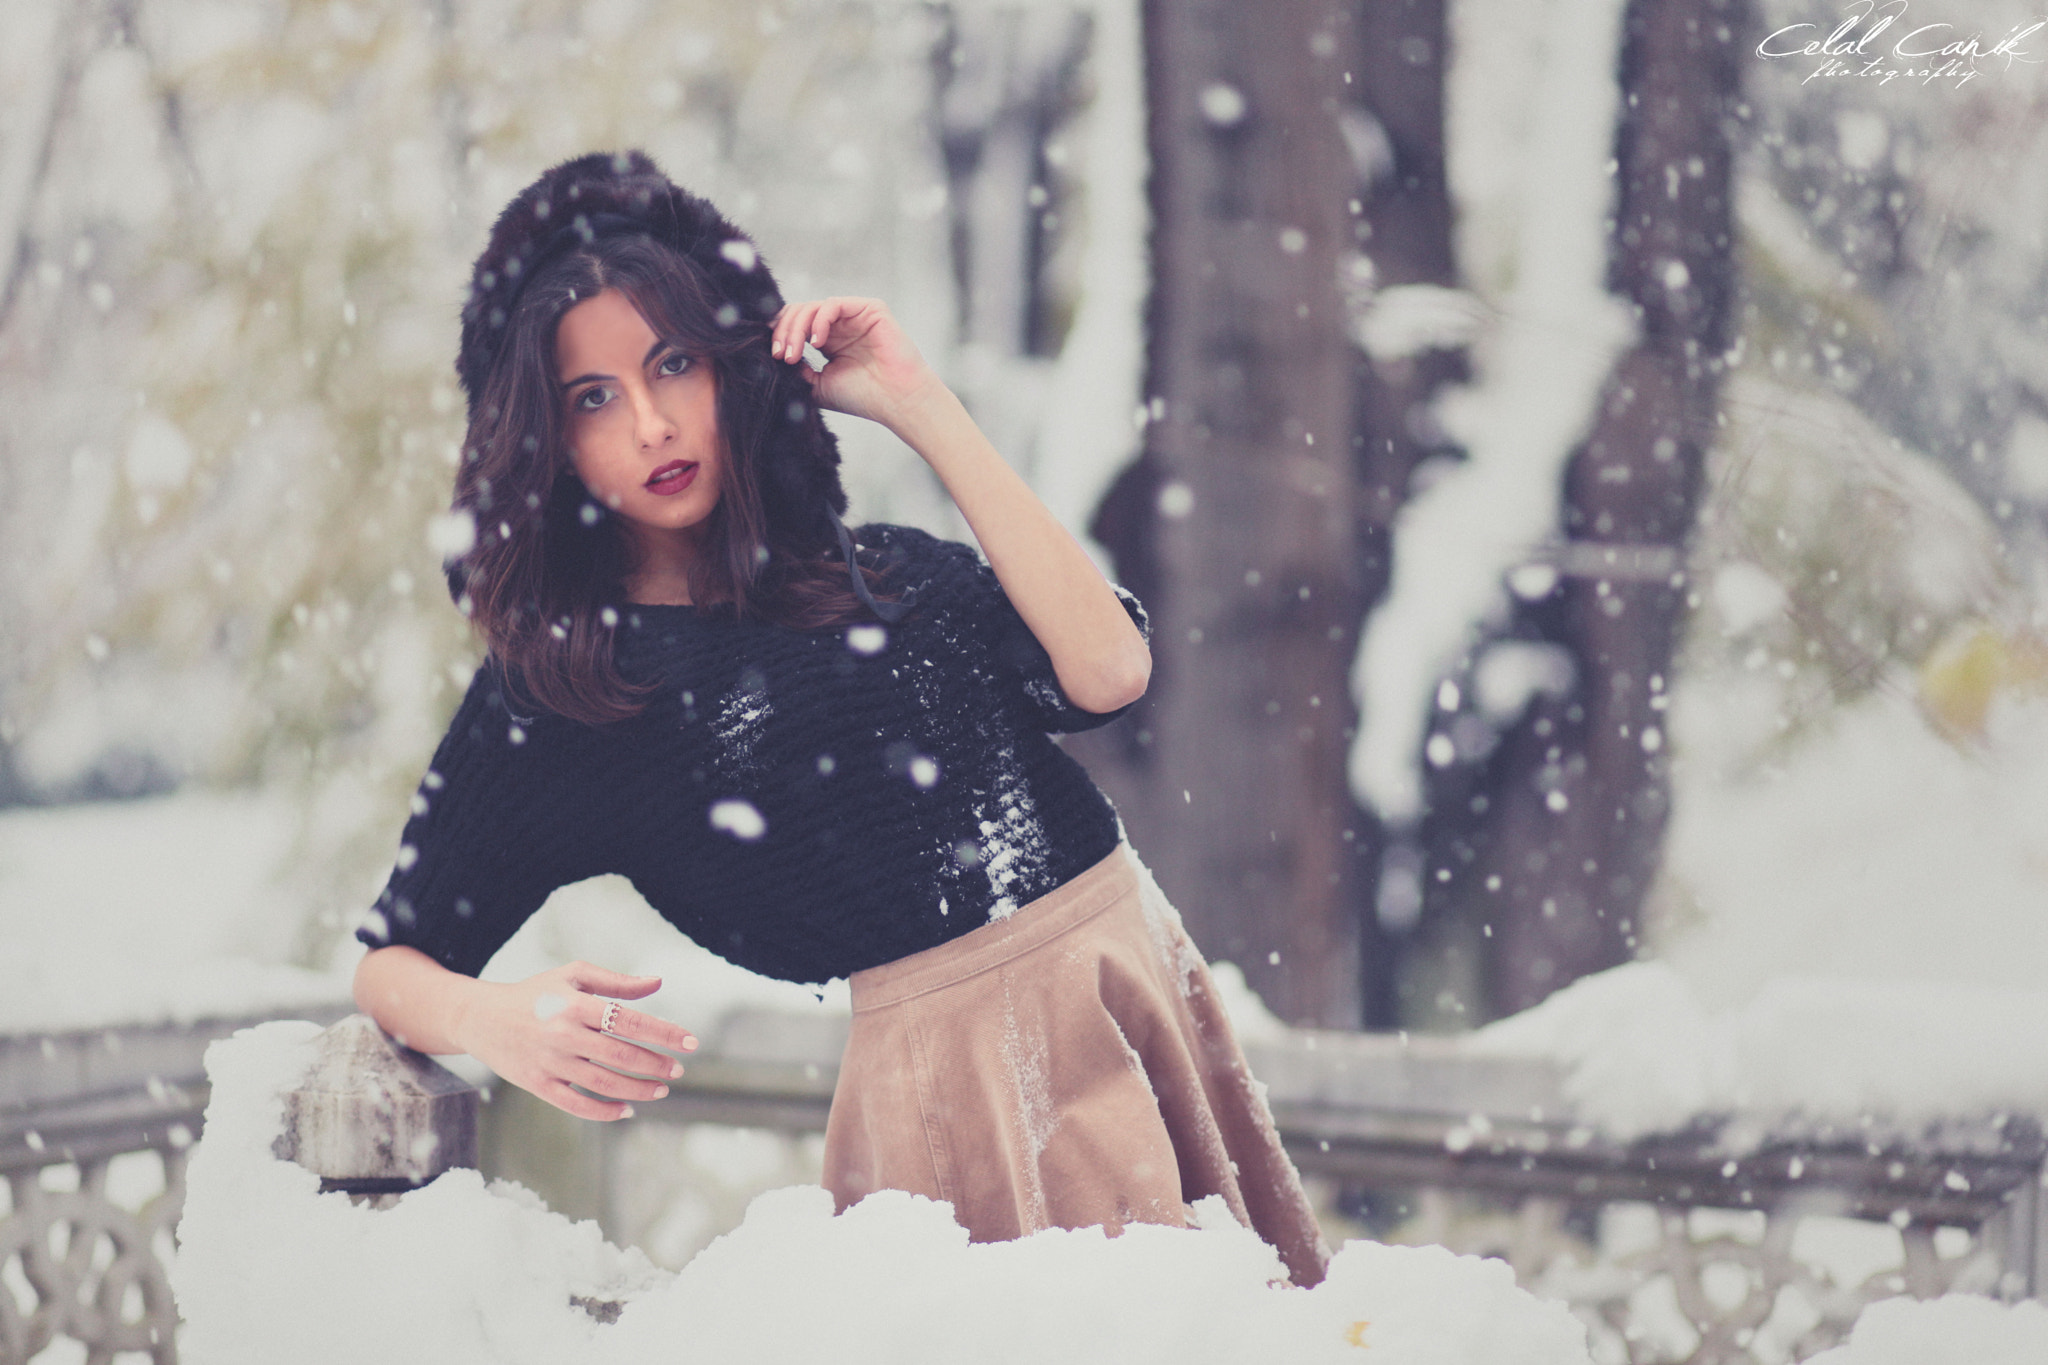 Photograph snow by Celal Canik on 500px